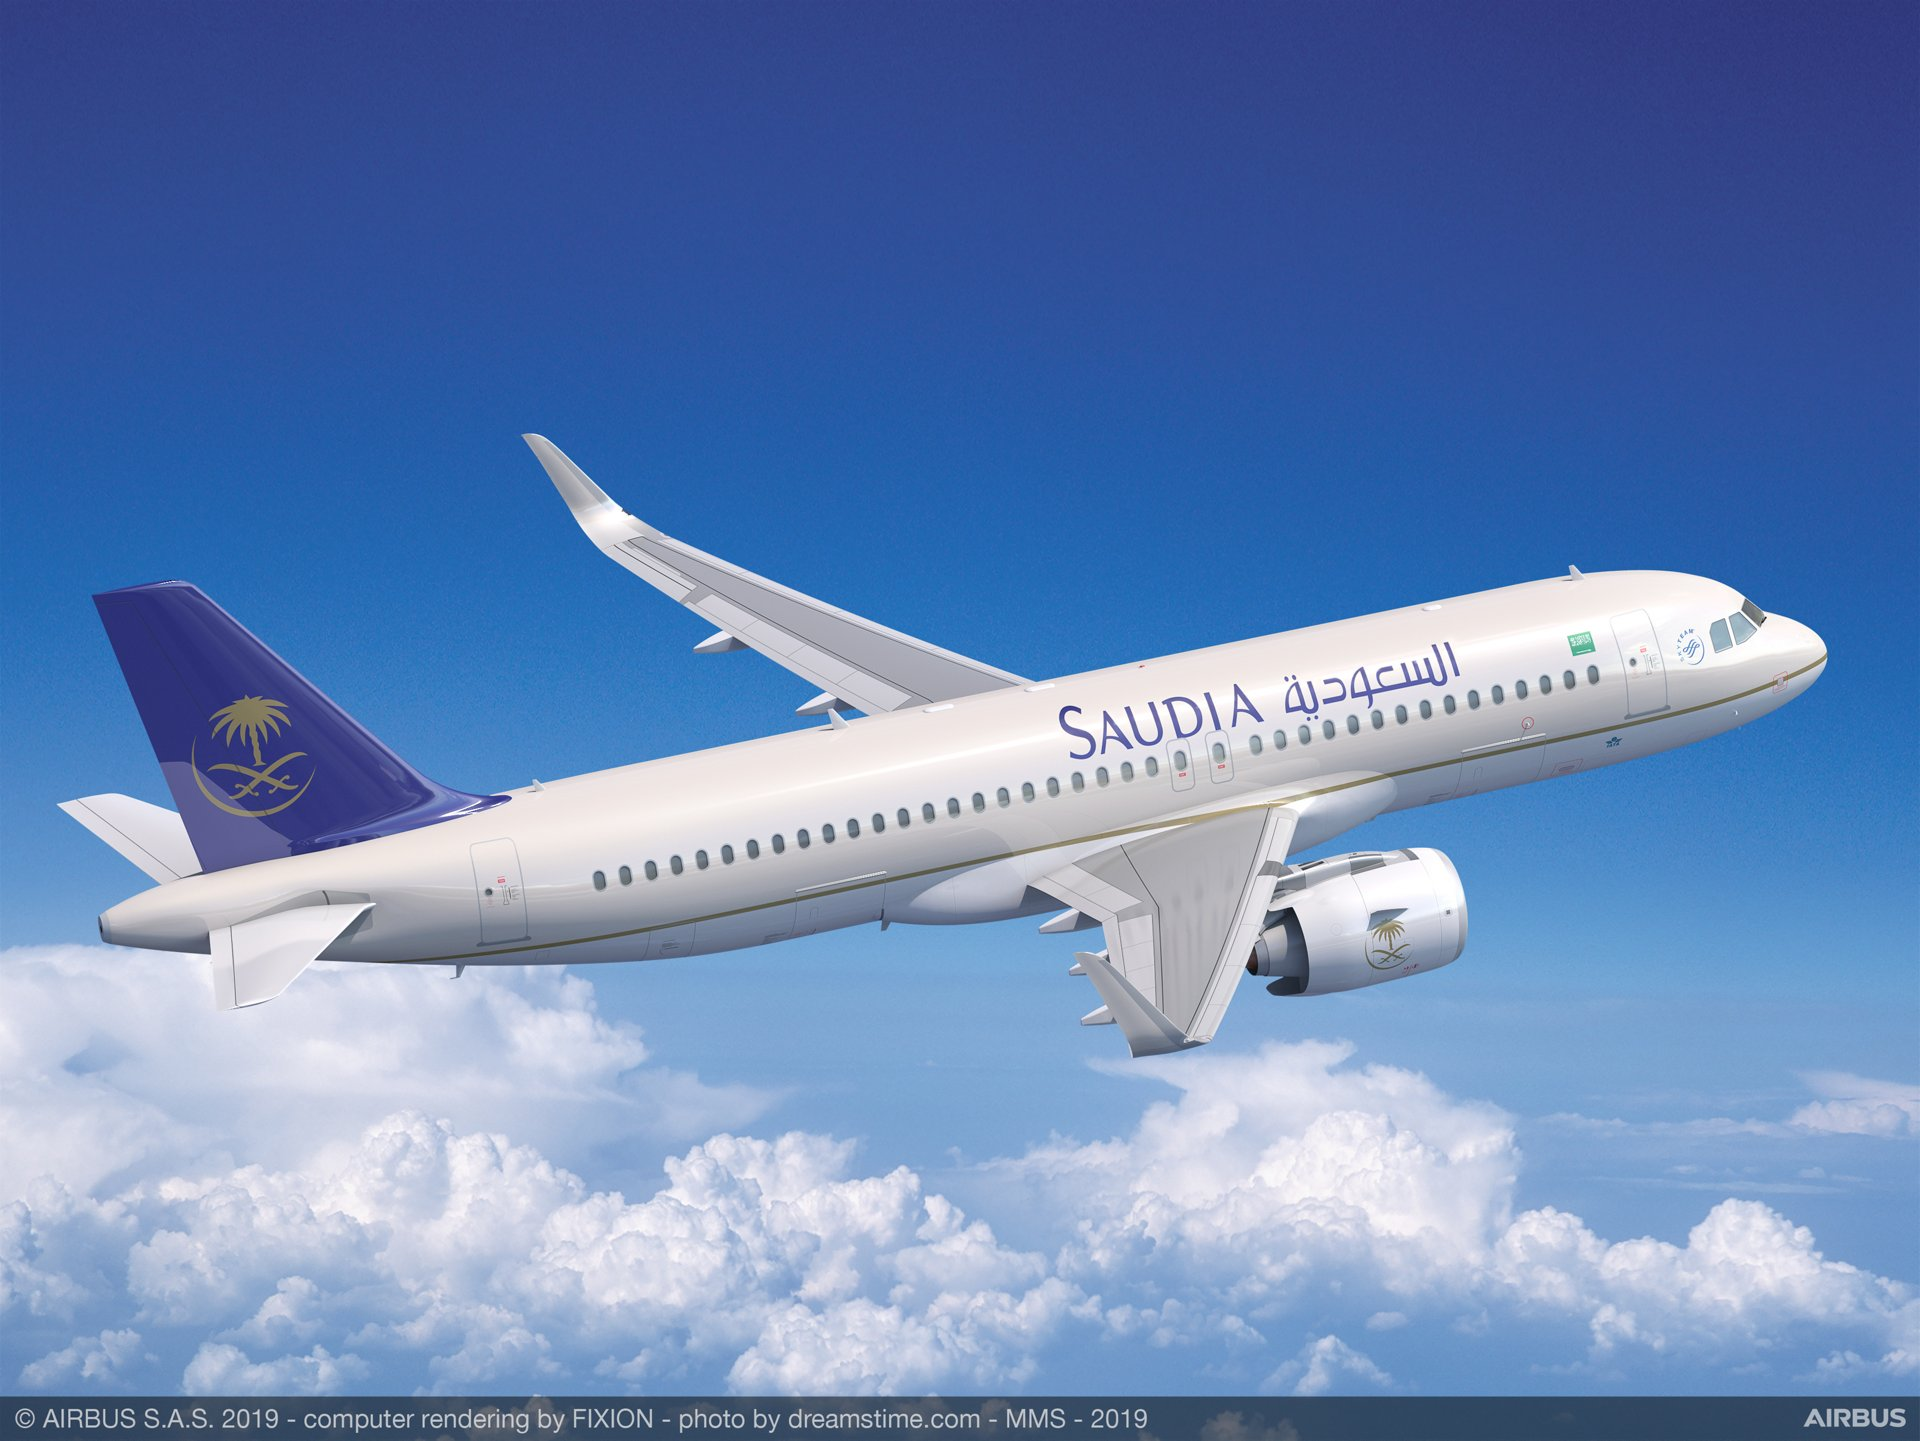 The expansion of Saudi Arabian Airlines' existing A320neo Family order from 35 to as many as 100 aircraft (including 35 options) was announced at the 2019 Paris Air Show